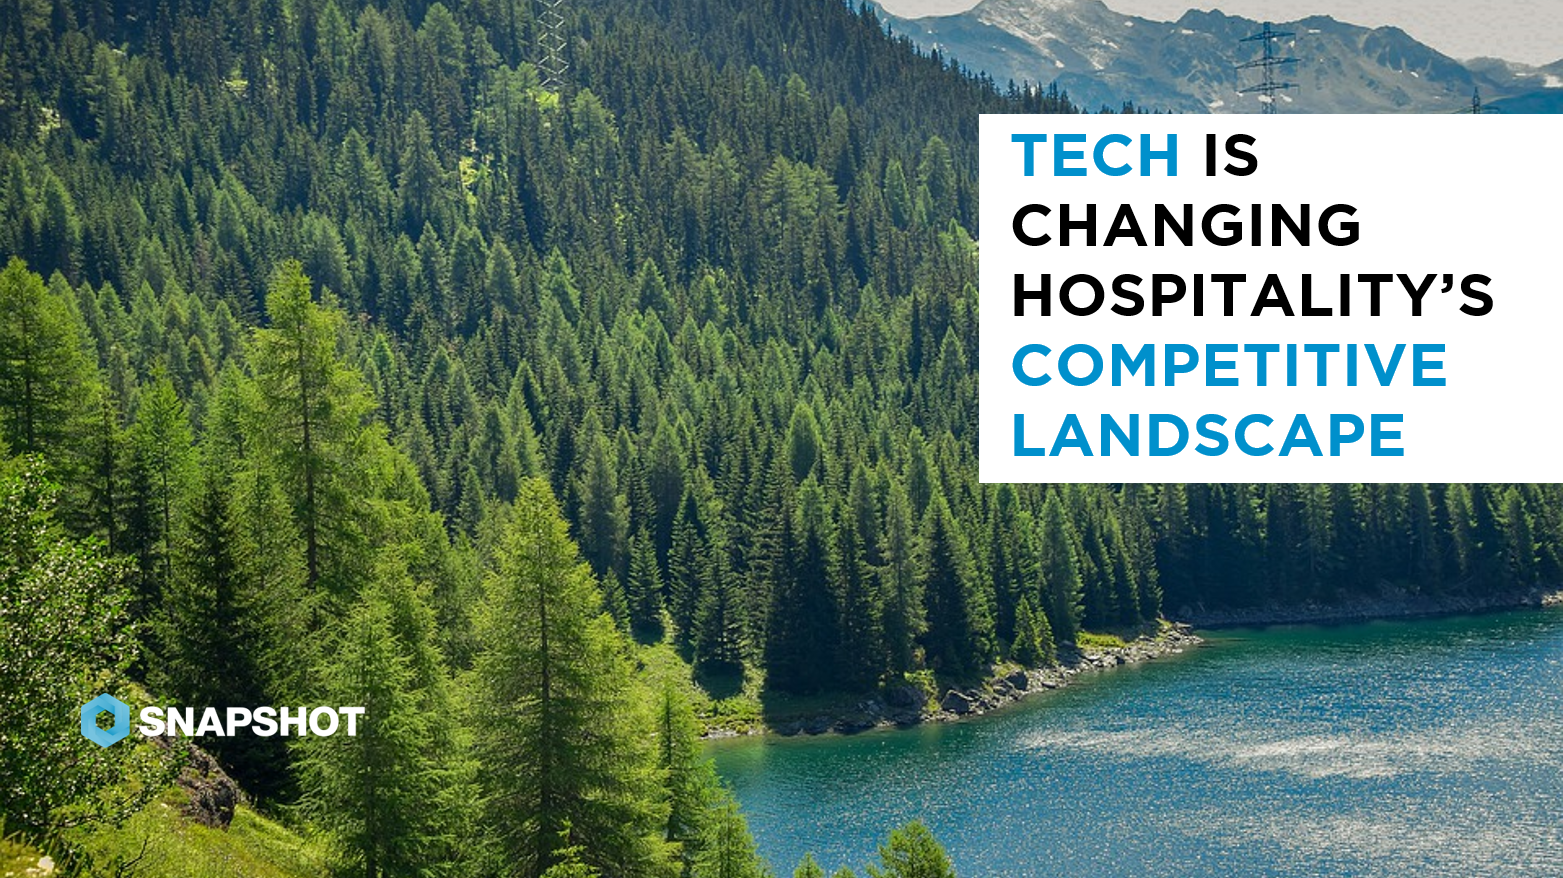 10.11.2019 Tech is changing hospitalitys competitive landscape